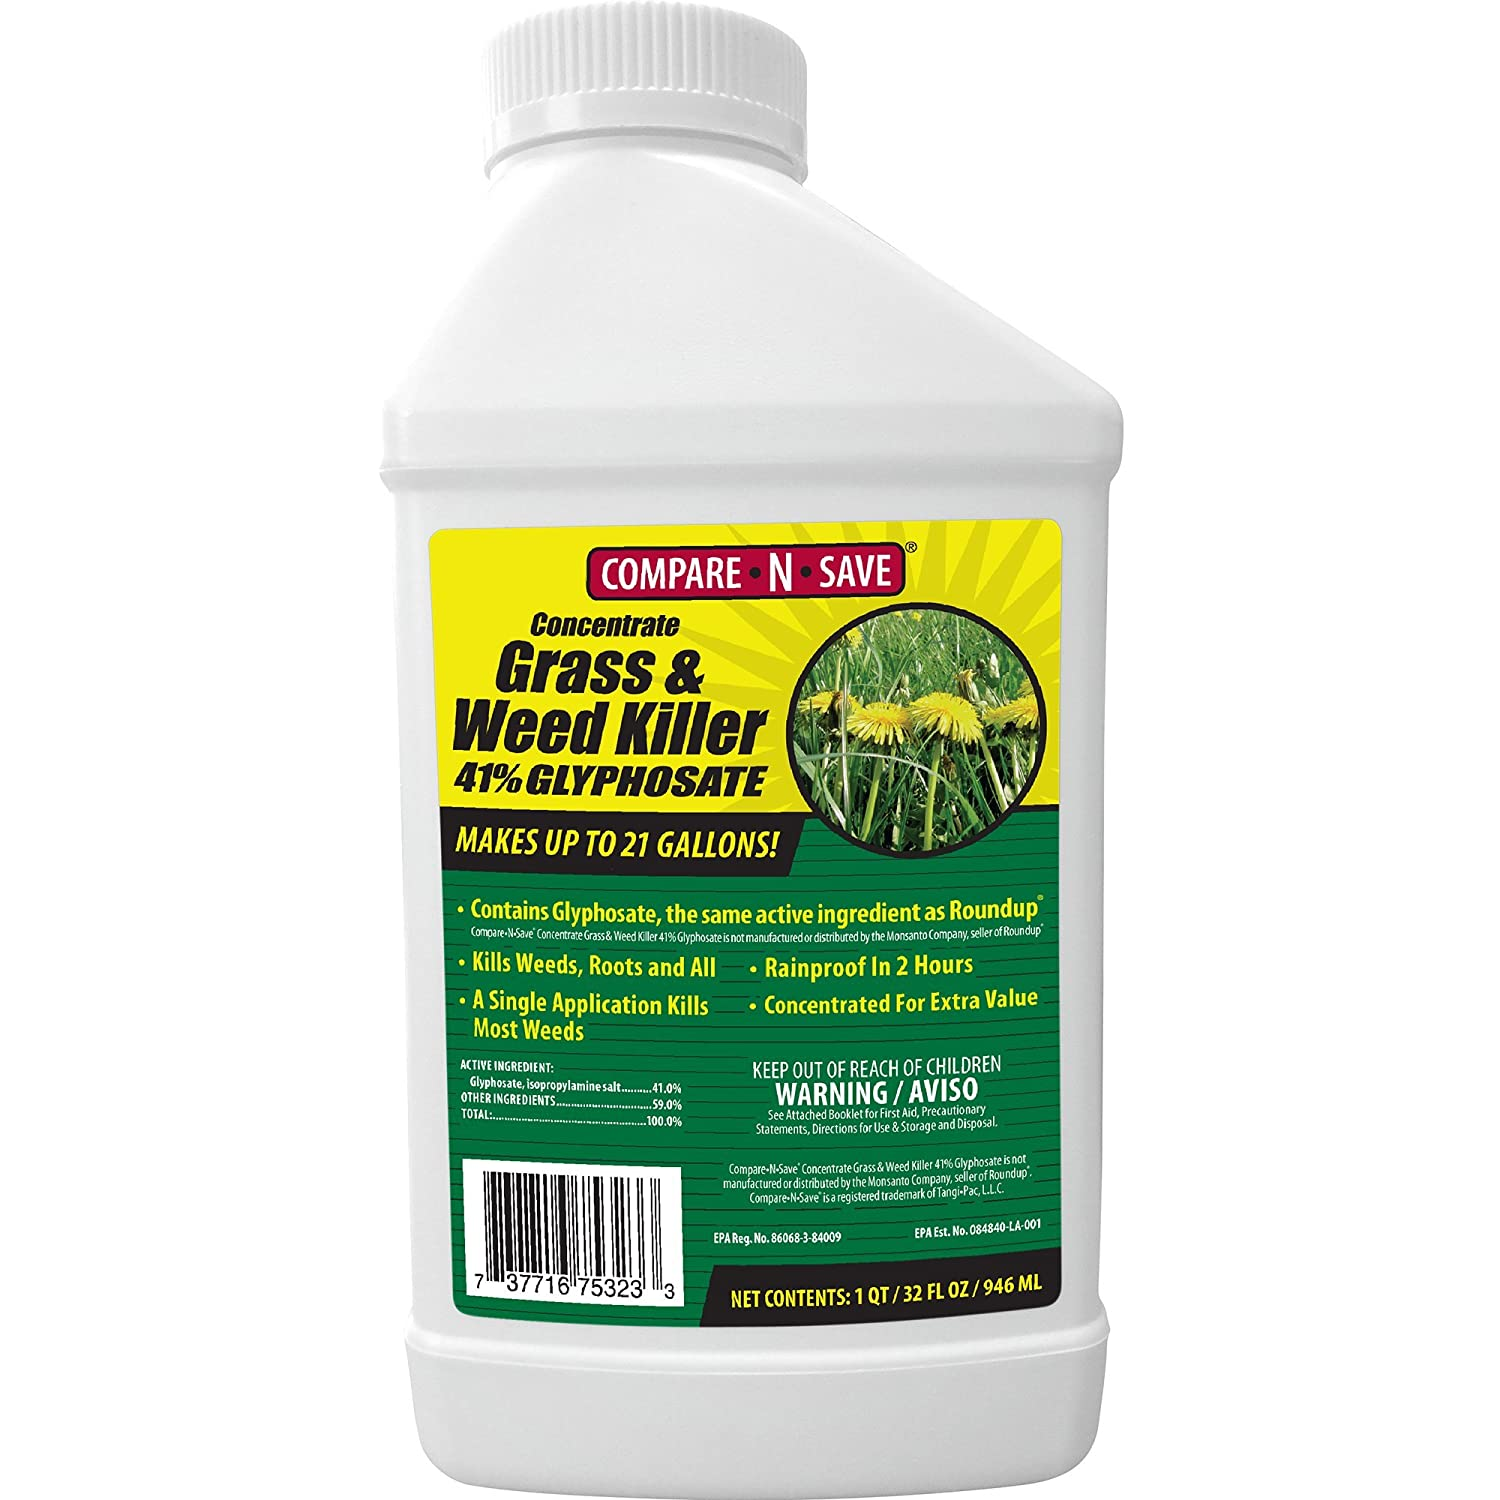 best weed killer, weed killer, what is the best weed killer, best weed killer on the market, best weed killer spray, best weed killer for gardens, best weed and grass killer, garden weed killer, good weed killer for gardens, best grass killer, good weed killer, weed killer concentrate, best weed control, best weed killer for lawns, what's the best weed killer, weed killer brands, best weed killer for lawns reviews, commercial weed killer, best weed and feed, best weed killer concentrate, weed killer reviews, strong weed killer, top rated weed killer, most effective weed killer, what is the best weed and grass killer, best weed and grass killer concentrate, top weed killer, fastest weed killer, industrial weed killer, best weed killer out there, industrial grade weed killer, where to buy commercial grade weed killer, commercial grade weed killer, best dandelion killer, best weed and grass killer reviews, weed killer spray reviews, fast acting weed killer review, granular weed killer, professional strength weed killer, best herbicide, what weed killer works best, best commercial weed and grass killer, garden weed killers reviews, good grass killer, top 5 weed killers, good commercial grade weed killer, best commercial weed killer, industrial strength weed killer, top ten weed killers, what is the best weed killer in the world, different brands of weed killers, lawn herbicide reviews, commercial weed killer concentrate, what is a good weed killer, best rated weed killer for lawns, best vegetation killer, broadleaf weed killer reviews, best rated weed killer, best weed killer available, best weed killer concentrate for lawns, weed killer best results, number one weed killer, best weed grass killer, professional weed killer, broadleaf killer, post emergent weed killer, best weed and grass killer on the market, world's strongest weed killer, weed killer for grass reviews, best weed killer for grass, best brush killer concentrate, weed killer for large areas, best granular weed killer, lawn weed killer ratings, which weed killer, best total vegetation killer, strongest weed killer you can buy, best weed killer for sidewalks, weed killer pellets, what is the best weed killer for lawns, most effective weed killer for lawns, best weed control for lawns, weed and grass killer reviews, granular vegetation killer, best rated weed and feed, extra strong weed killer, granular weed killer for lawns, very strong weed killer, farm grade weed killer, best grass killer for lawns, best post emergent herbicide, best weed spray for lawns, best weed killer in the world, spectrum weed killer, best selective weed killer, selective weed killer, kills all weed killer, most powerful weed killer in the world, best all purpose weed killer, best broadleaf weed killer for lawns, best broadleaf herbicide, brush killer reviews, best broadleaf weed killer, homemade weed killer, non toxic weed killer, natural weed killer, vinegar weed killer, best way to get rid of weeds permanently, what kills weeds permanently, diy weed killer, home remedy weed killer, weed killer recipe, permanent weed killer, how to kill weeds, homemade weed killer recipe, homemade weed and grass killer, what kills grass and weeds permanently, vinegar and salt weed killer, vinegar epsom salt weed killer, weed and grass killer, what kills vegetation permanently, cheap weed killer, natural weed killer recipe, best way to kill weeds, homemade roundup, homemade grass killer, home made weed killer, epsom salt weed killer, salt to kill weeds, roundup alternative, vinegar weed killer recipe, vegetation killer, how to make weed killer, vinegar salt weed killer, how to get rid of weeds, how to kill grass and weeds, permanent vegetation killer, best homemade weed killer, all natural weed killer, natural weed killer with vinegar, does vinegar kill weeds, safe weed killer, how to kill weeds with vinegar, natural weed killer with vinegar and dawn, kill grass and weeds, natural weed and grass killer, vinegar and epsom salt weed killer, killing grass with salt, natural way to kill weeds, permanent weed control, best chemical to kill weeds, everyday cheapskate weed killer, best glyphosate herbicide, vinegar for weeds, homemade weed killer vinegar, how to make homemade weed killer, white vinegar weed killer, total vegetation killer, roundup for weeds, killing grass with vinegar, driveway weed killer, epsom salt weed killer recipe, what kills weeds, homemade weed killer lawns, homemade weed killer with epsom salt, homemade vegetation killer, using vinegar to kill weeds, natural grass killer, vinegar epsom salt dawn weed killer, homemade liquid edger, will epsom salt kill weeds, permanent weed killer recipe, how to permanently get rid of weeds in driveway, the best homemade weed killer, cheap roundup, best stuff to kill weeds, long term weed control, homemade brush killer, home remedies for weeds, natural weed control, diy weed and grass killer, how to permanently get rid of weeds, natural herbicide, what kills grass and weeds, homemade weed killer vinegar salt and dish soap, will vinegar kill weeds, homemade weed killer safe for grass, how to use roundup, vinegar and dawn weed killer, killing large patches of weeds, homemade weed and grass killer recipe, top weed killer sprays, best weed and brush killer, spectracide vs roundup, killzall vs roundup, commercial brush killer, roundup weed killer for lawns, ortho ground clear vs roundup, best weed preventer, weed killer commercial what the front yard, weed killer reviews and buying guide, best weed killer to buy, spectracide weed and grass killer vs roundup, burnout 11 weed killer, best brush killer on the market, bayer ground clear best price